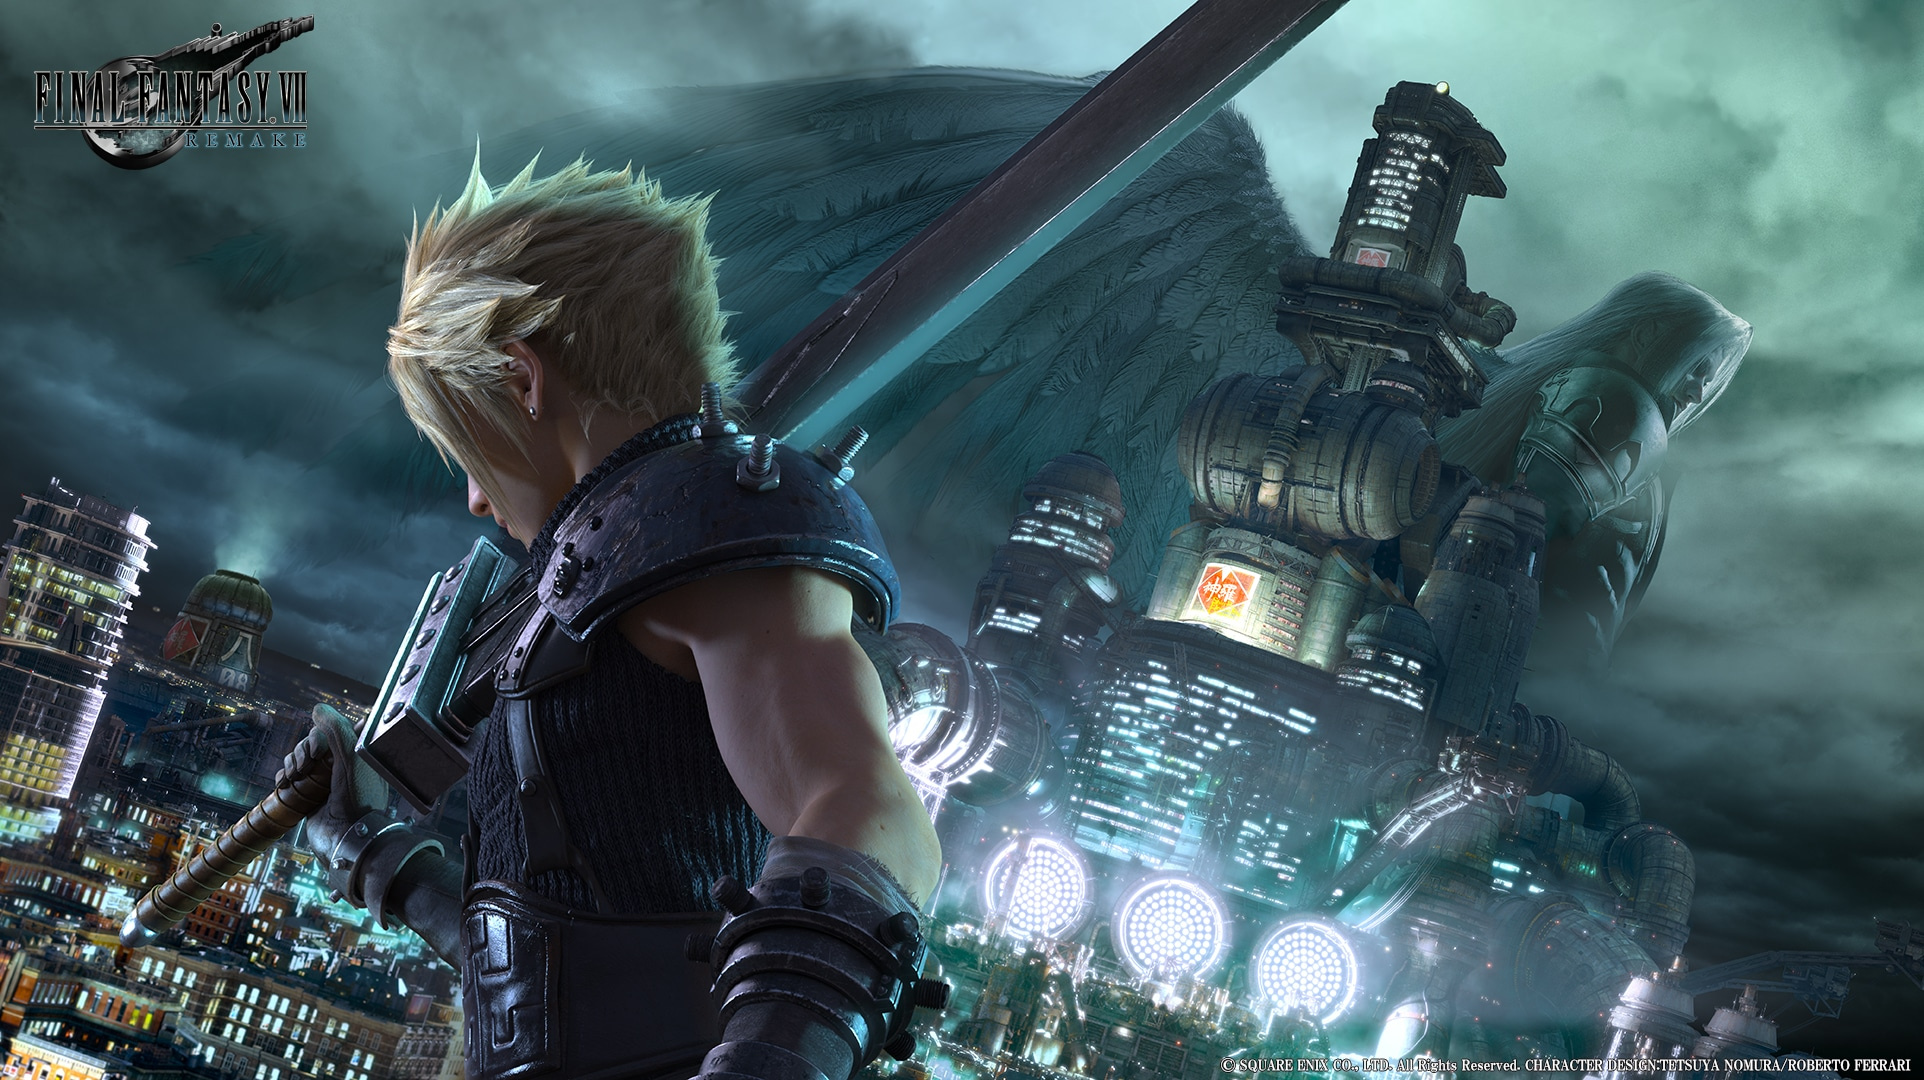 Final Fantasy Vii Remake S Soundtrack Stretches Across 7 Cds Push Square